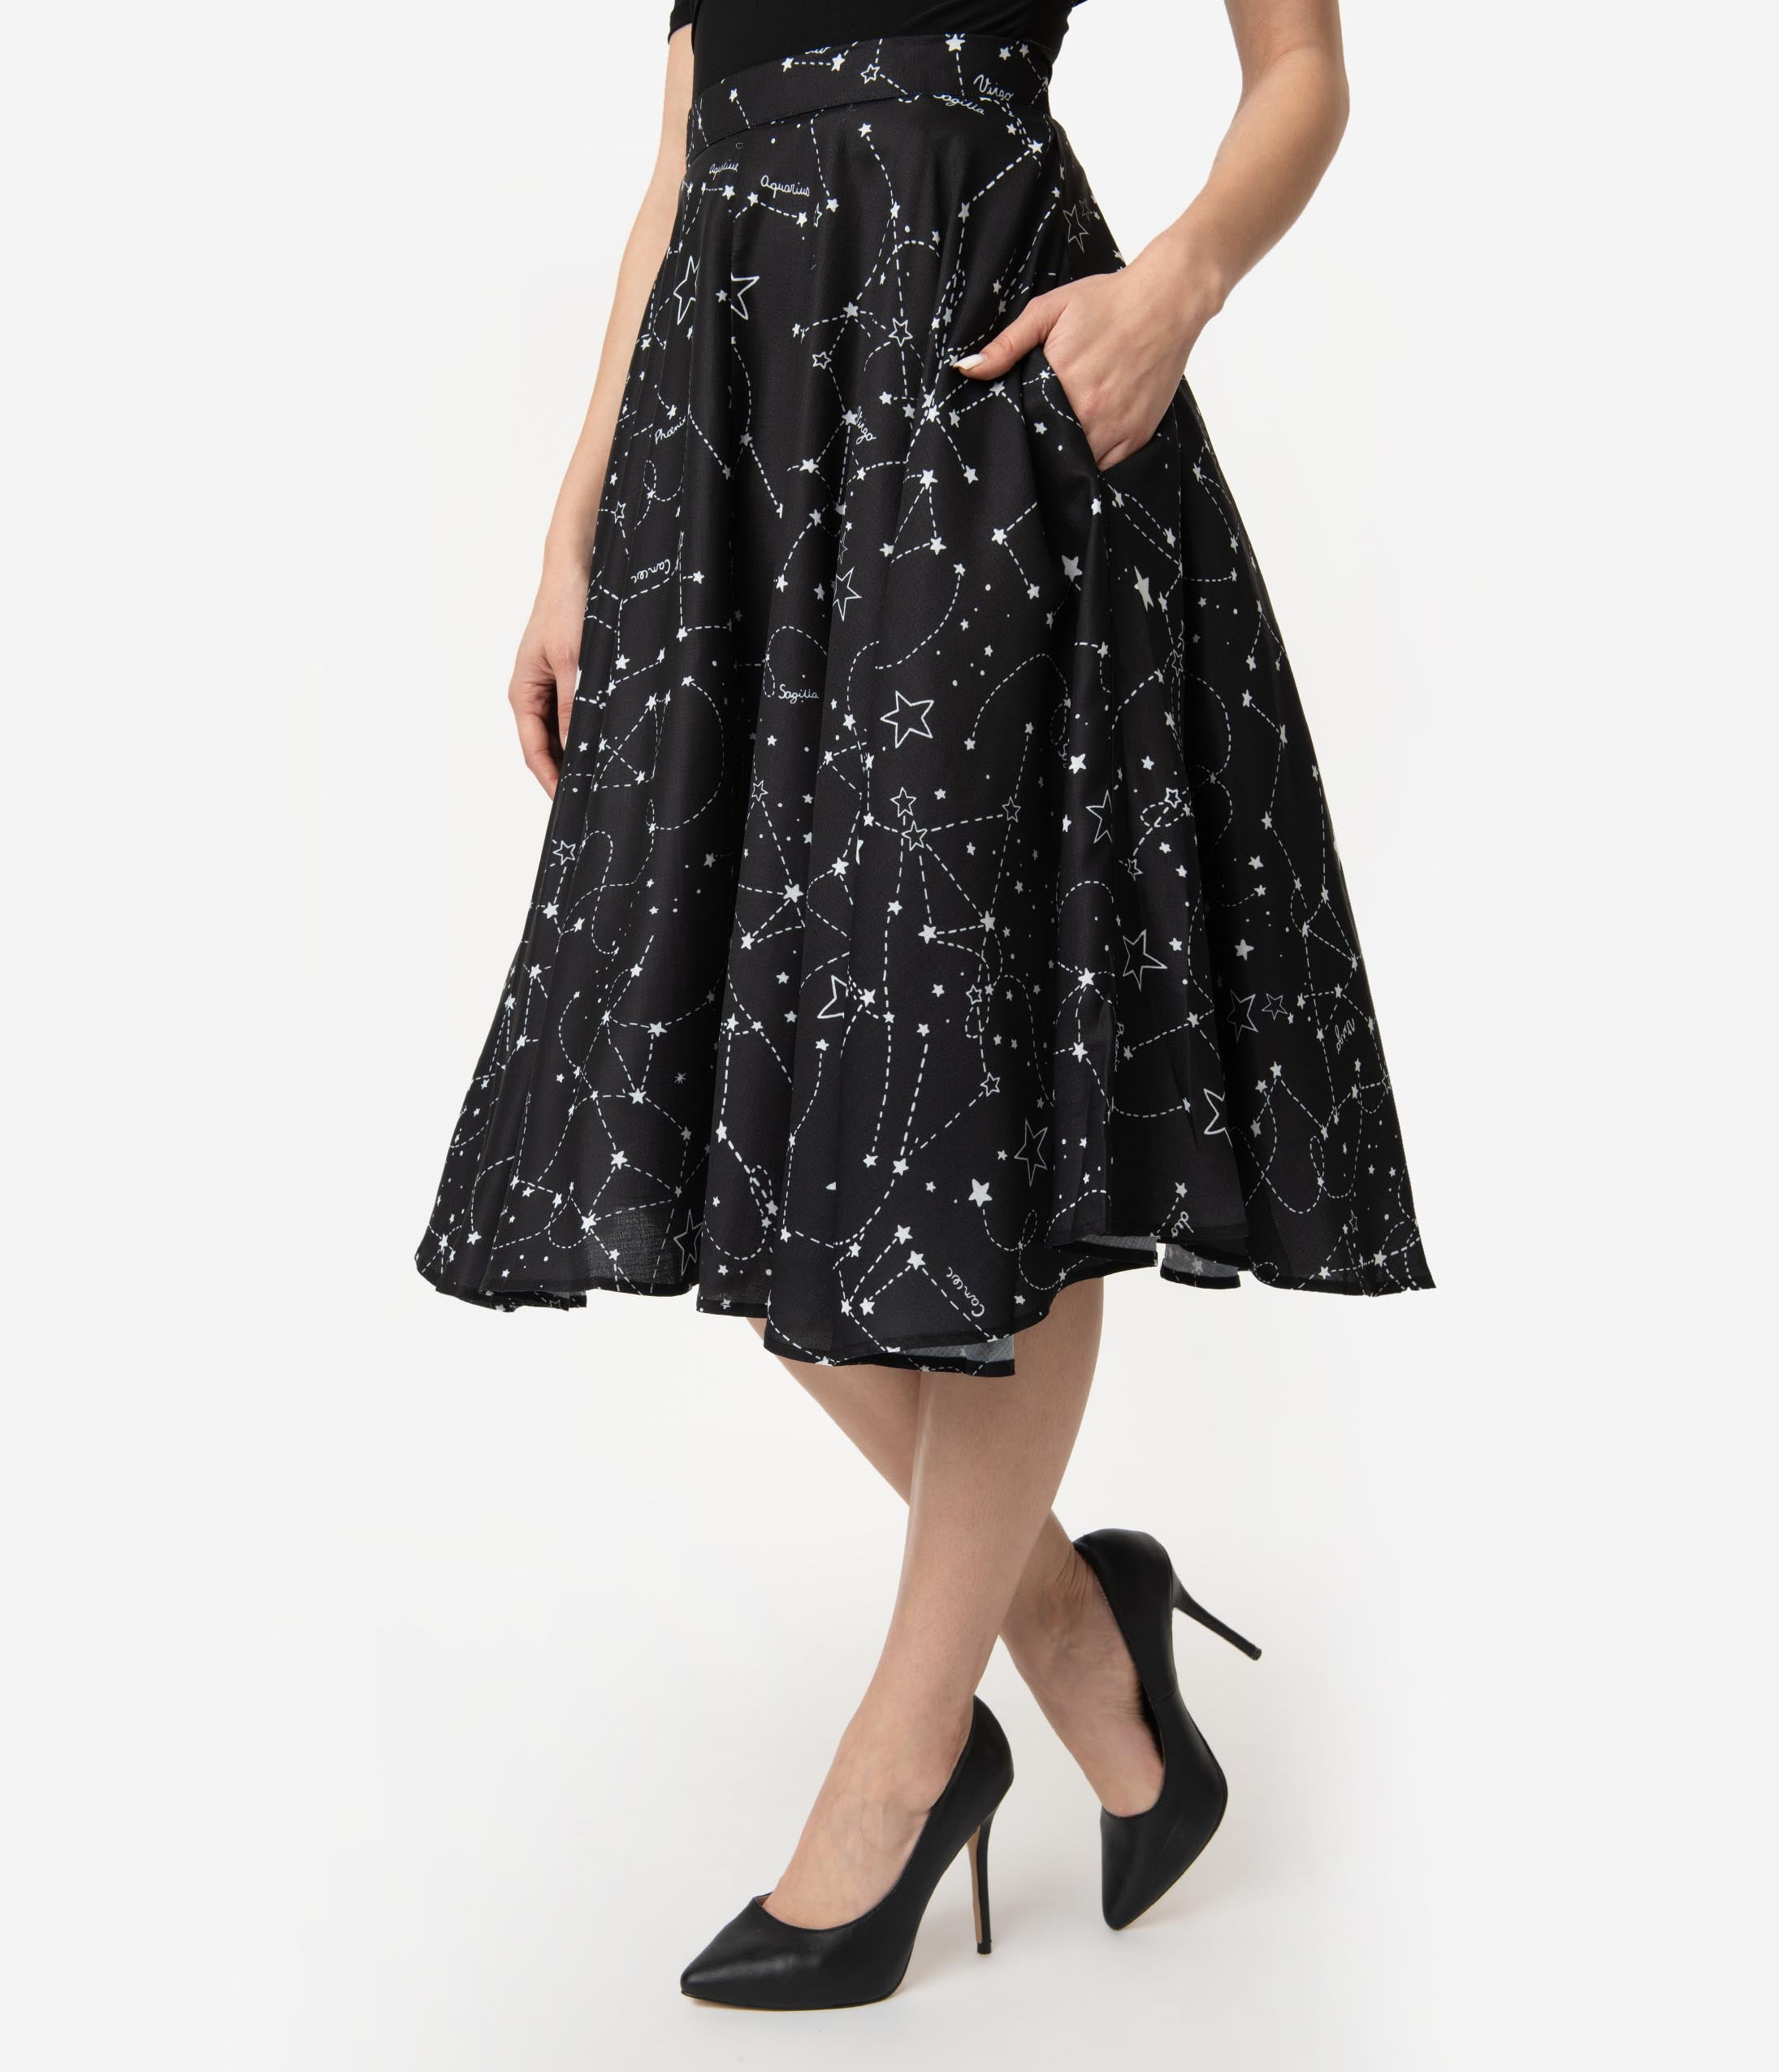 334782c054 High-Waisted Pencil Skirts, Swing & Pin Up Skirts – Unique Vintage